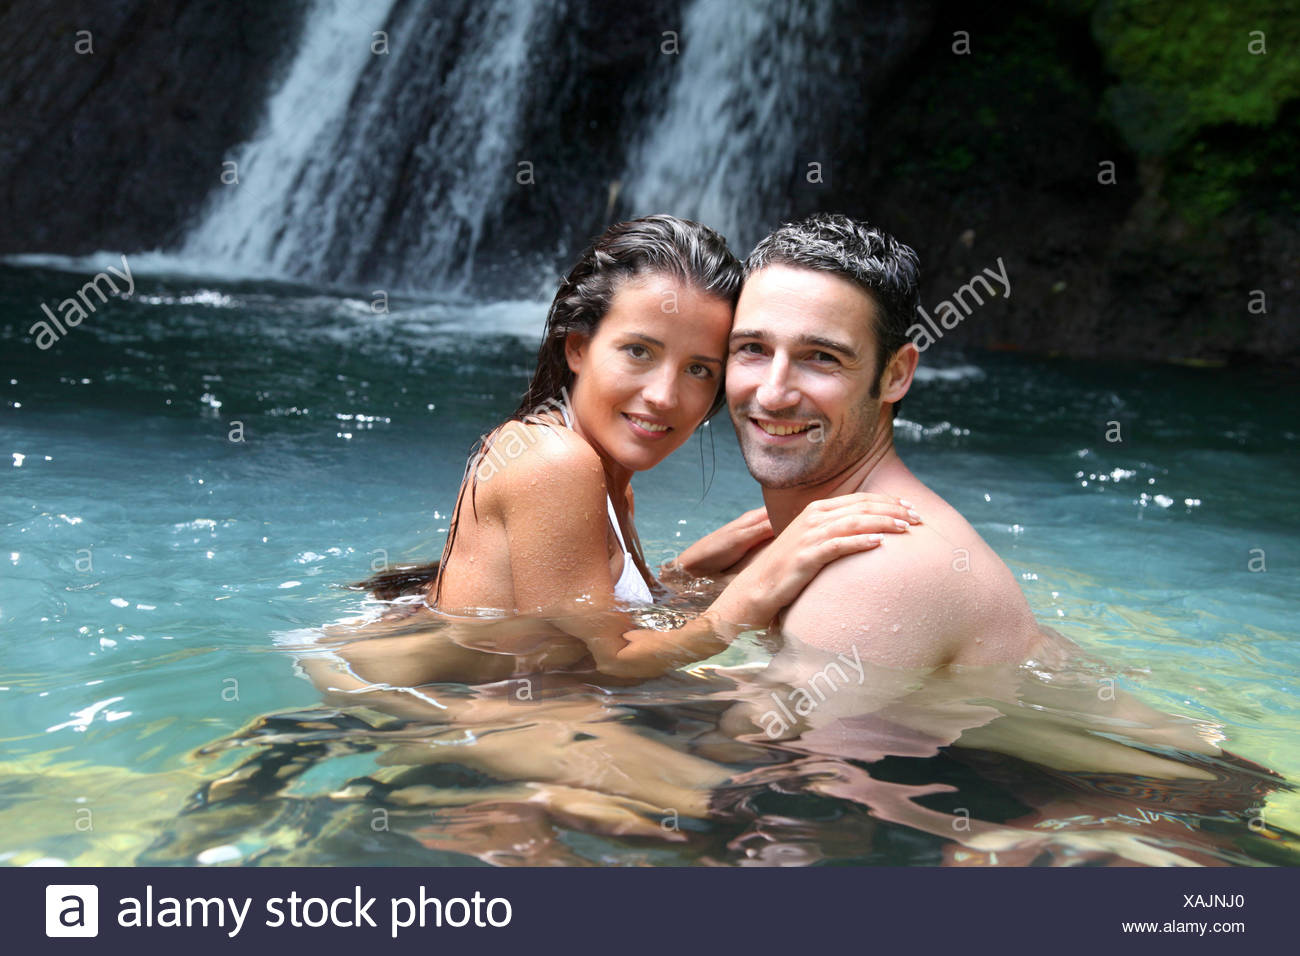 bathing girl waterfall stockfotos bathing girl waterfall bilder alamy. Black Bedroom Furniture Sets. Home Design Ideas